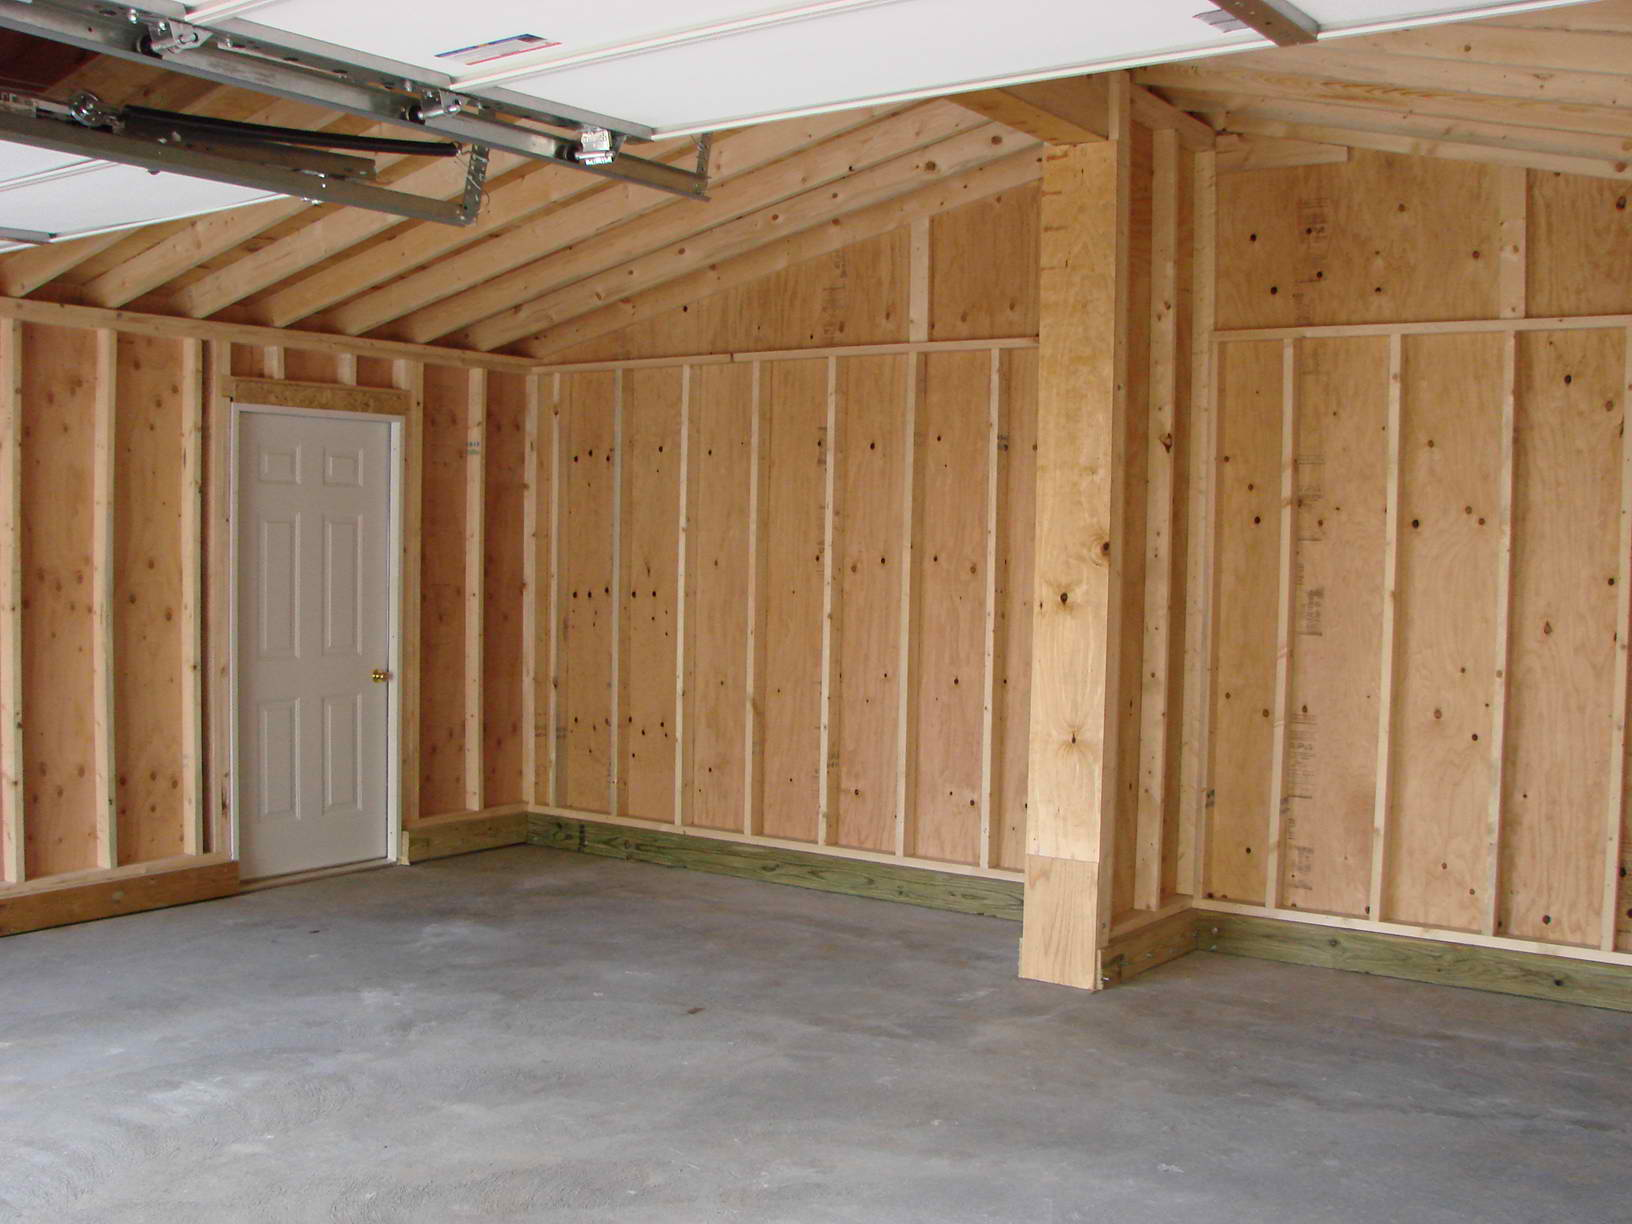 Interior View Of Floorless 2 Car Garage